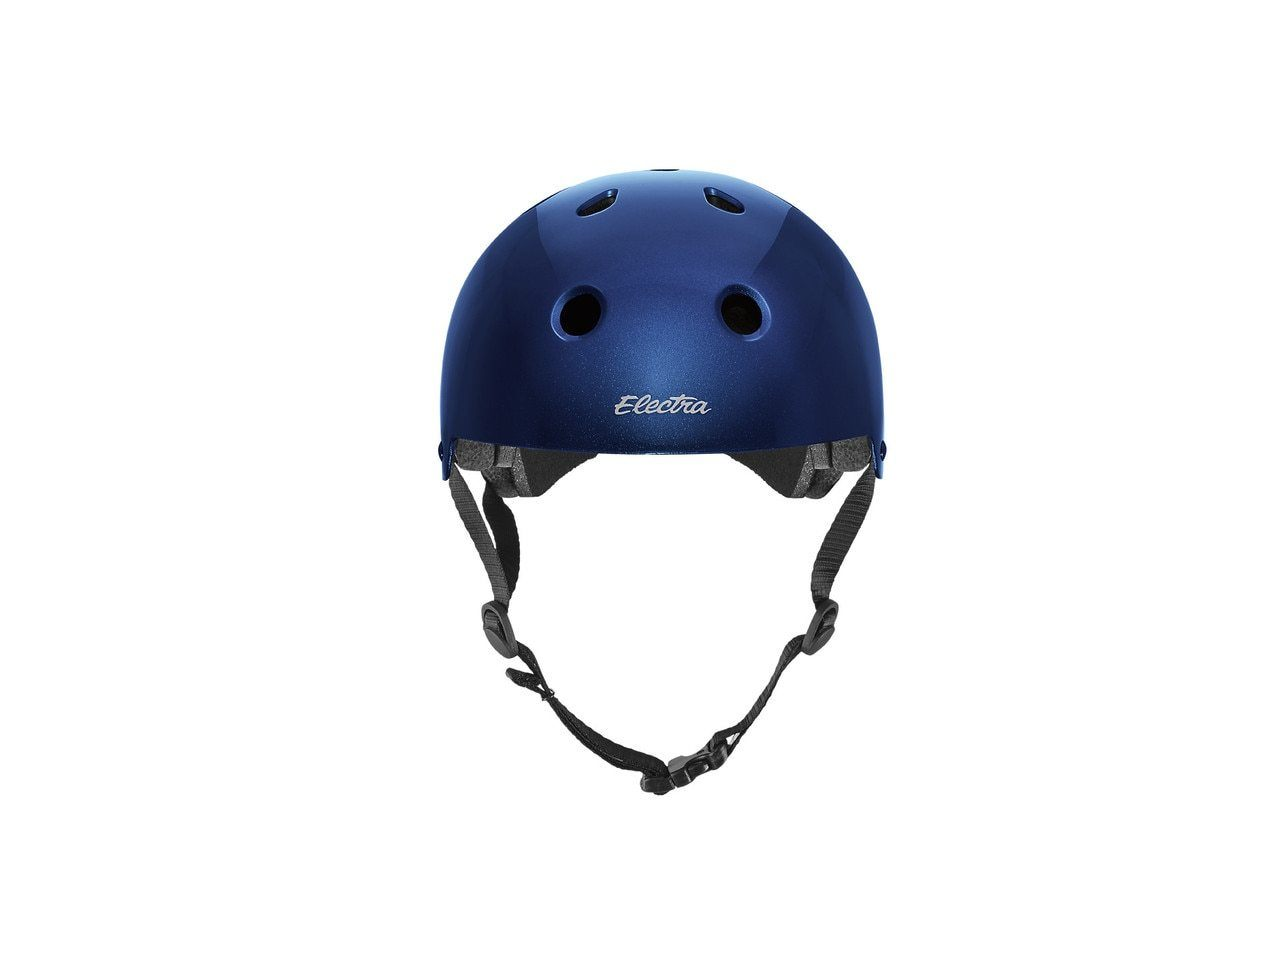 Electra Lifestyle Helmet Oxford Blue - medium